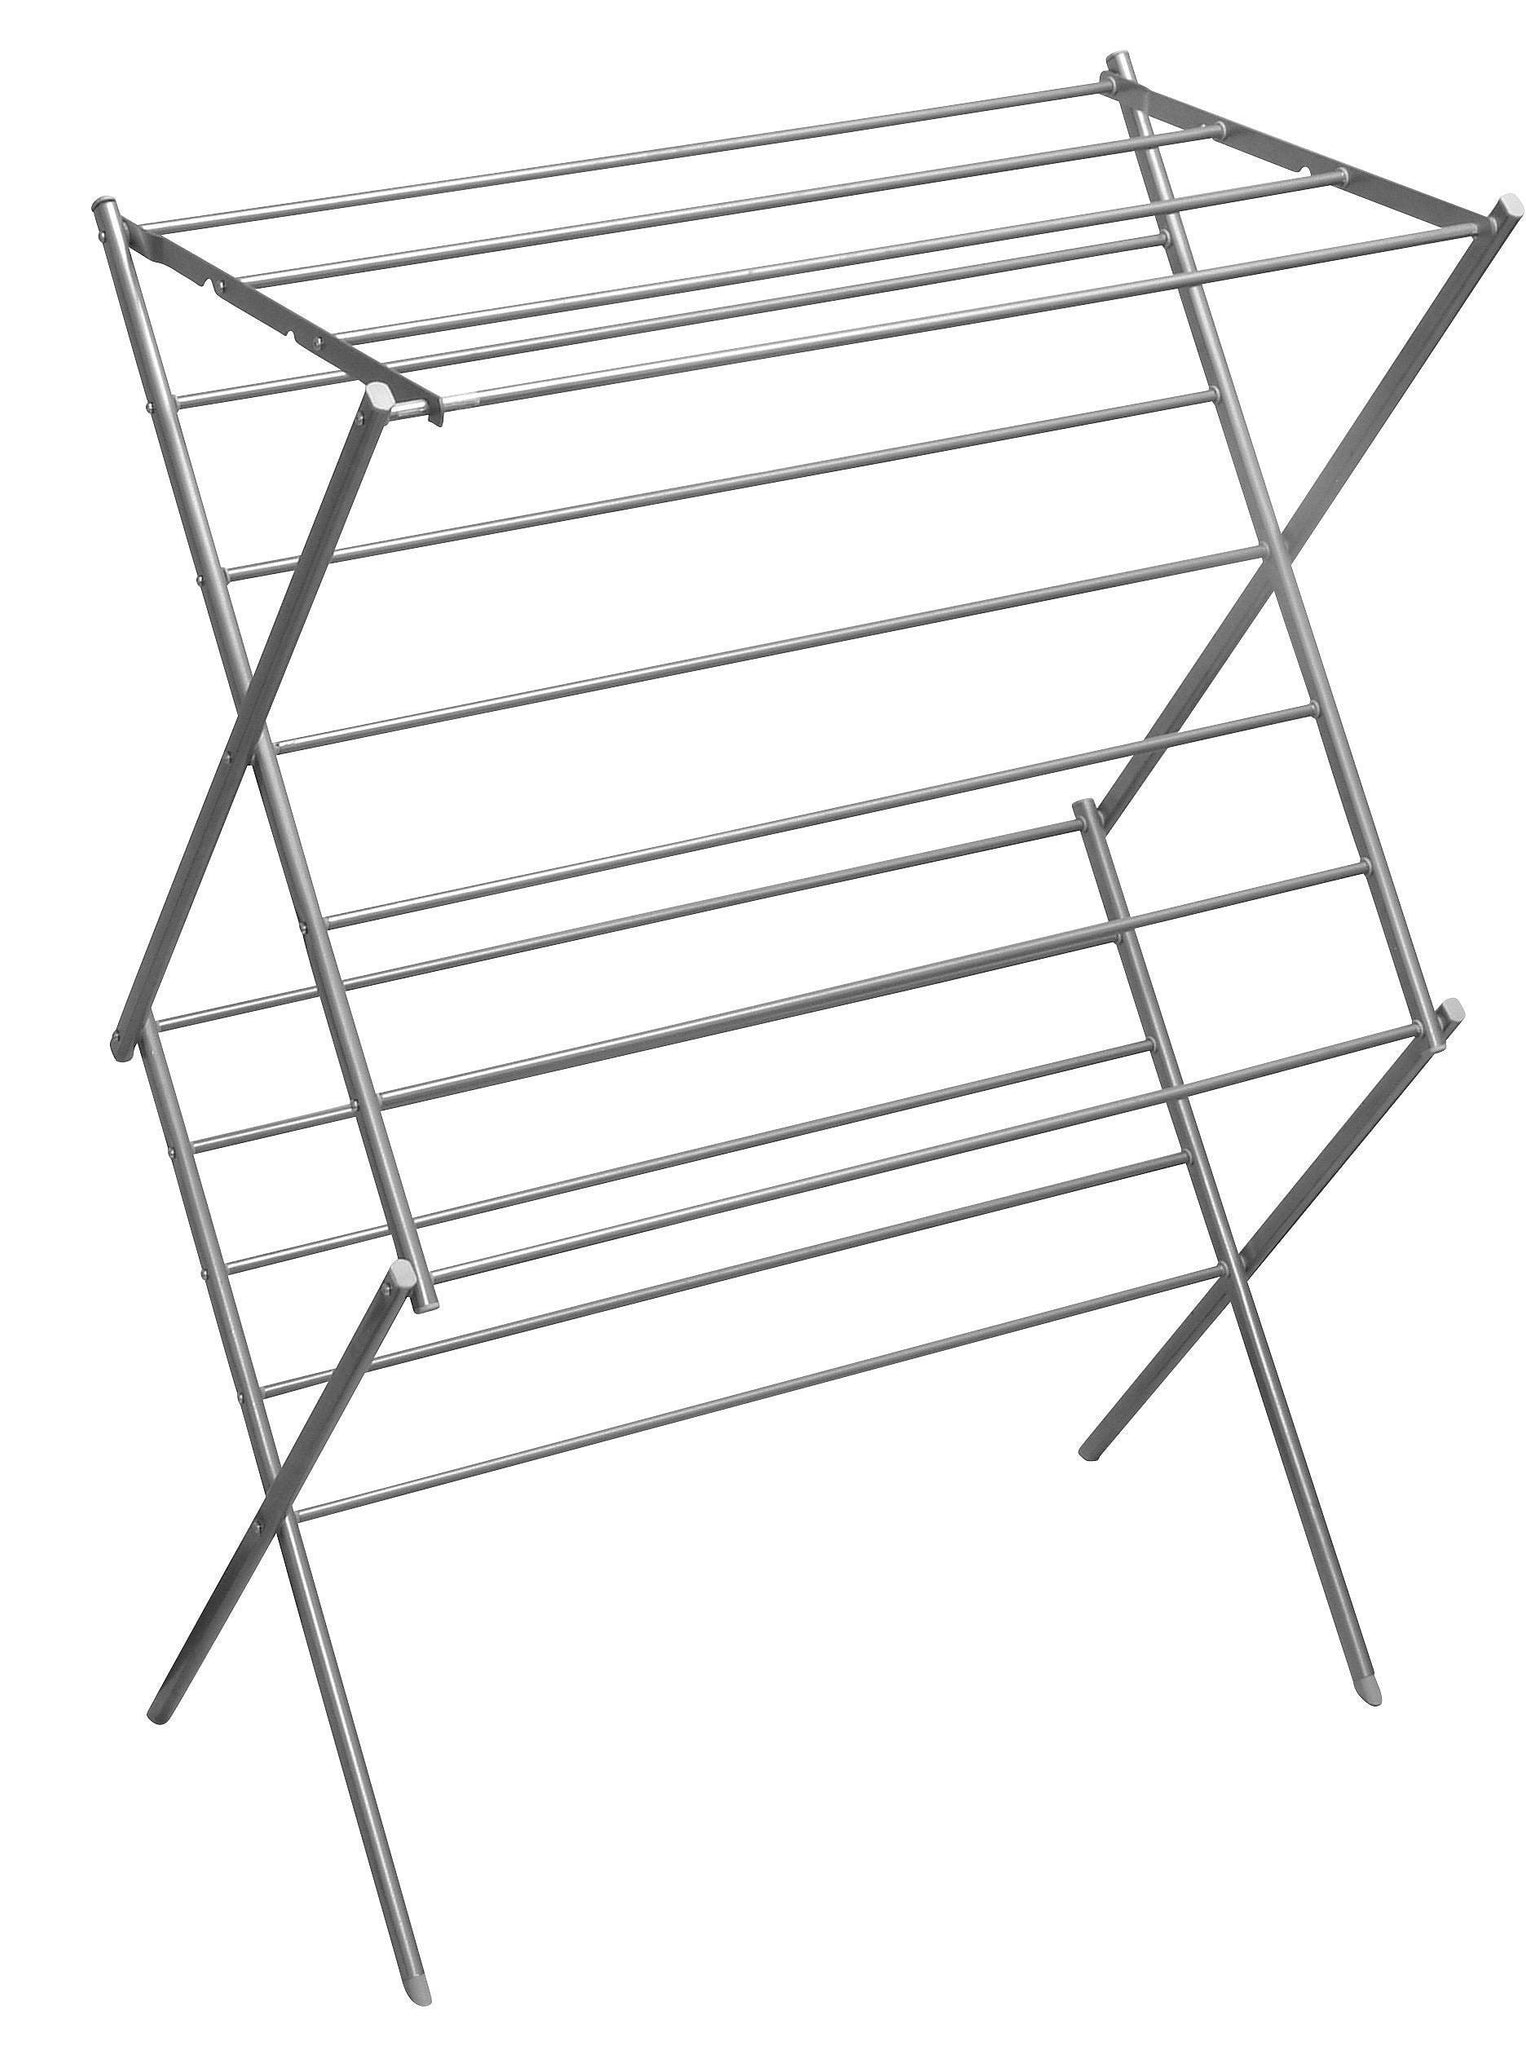 YBM HOME 2 Tier Deluxe Foldable Clothes Steel Drying Rack #1622-11